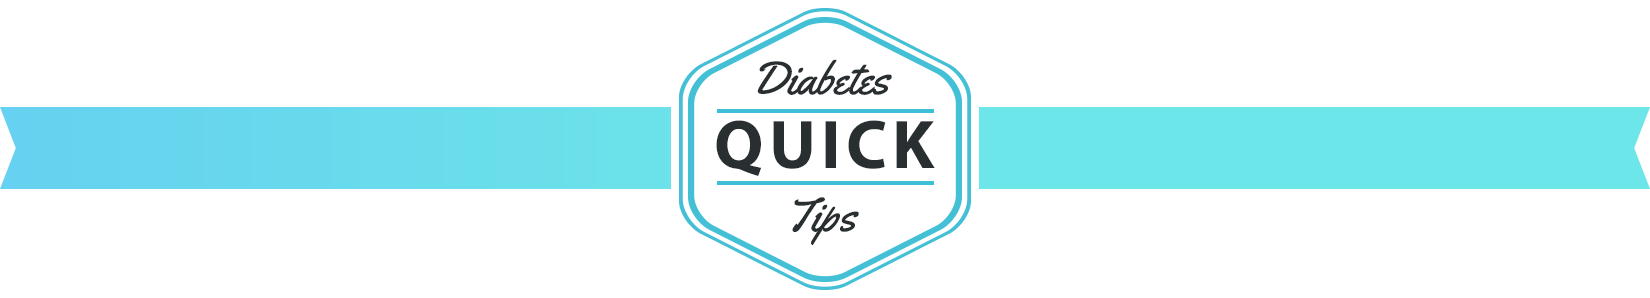 Type 1 Diabetes Health Tips: Prevention, Treatment & More